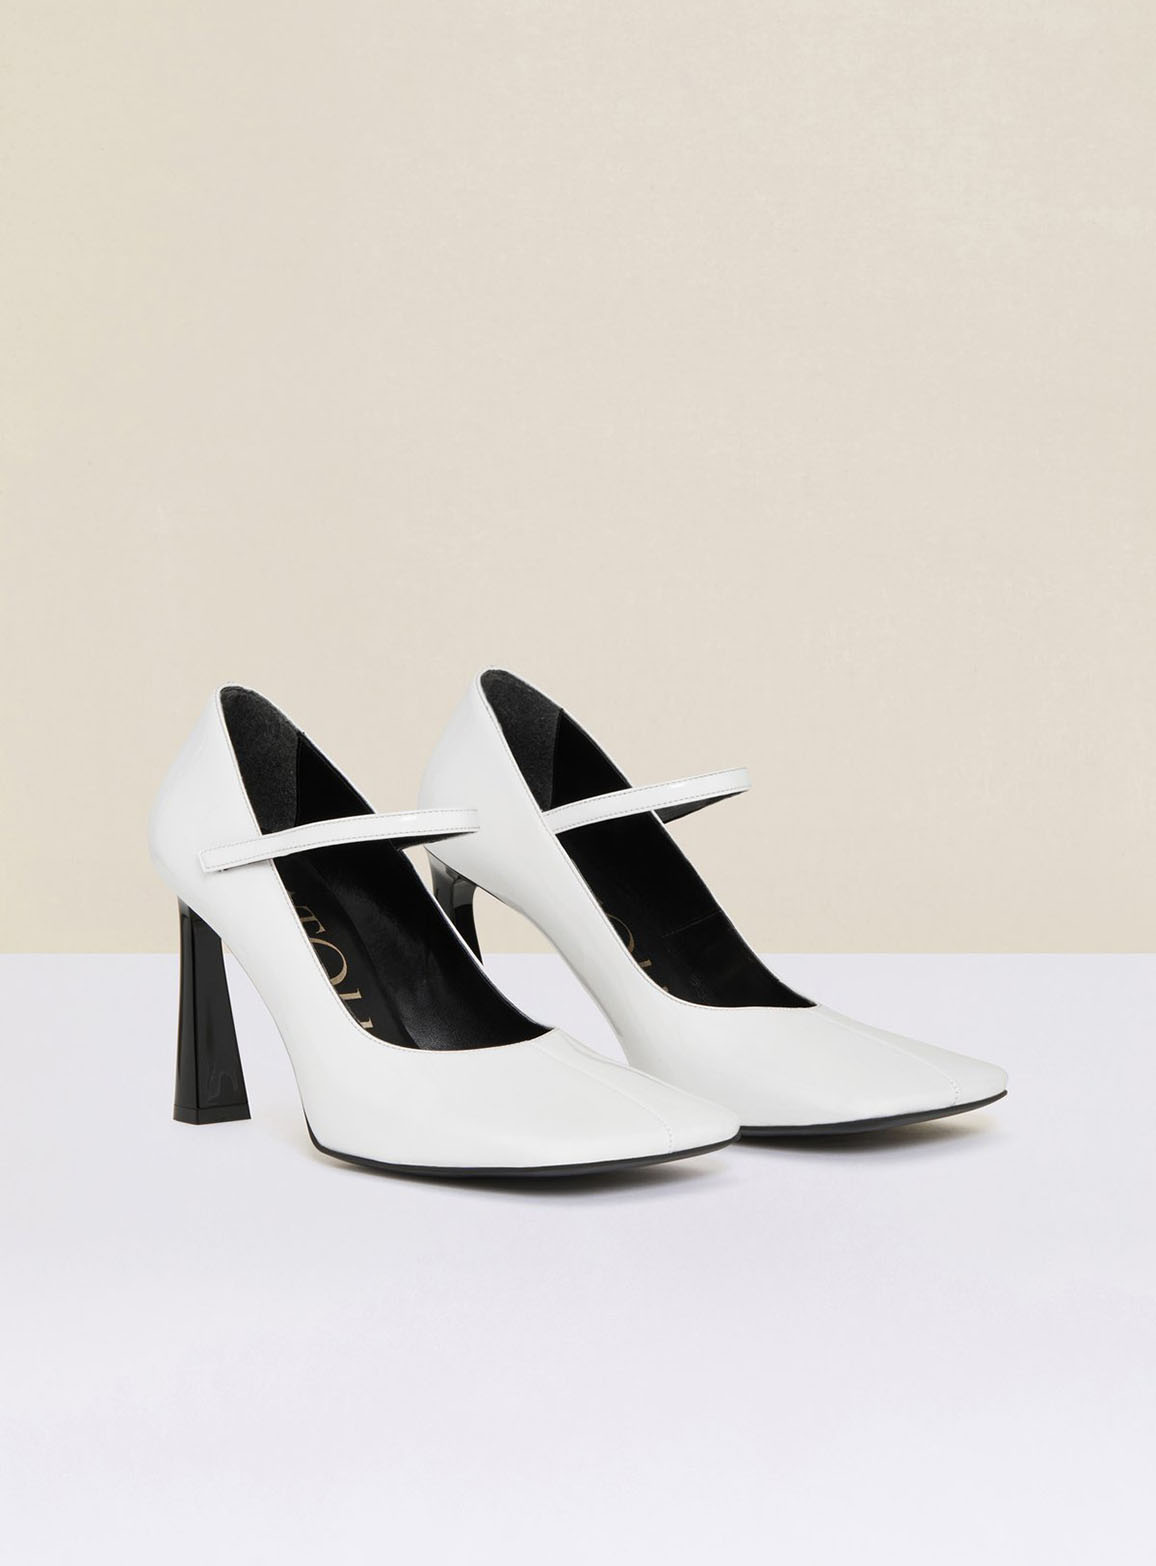 Mary Jane pumps in faux patent leather